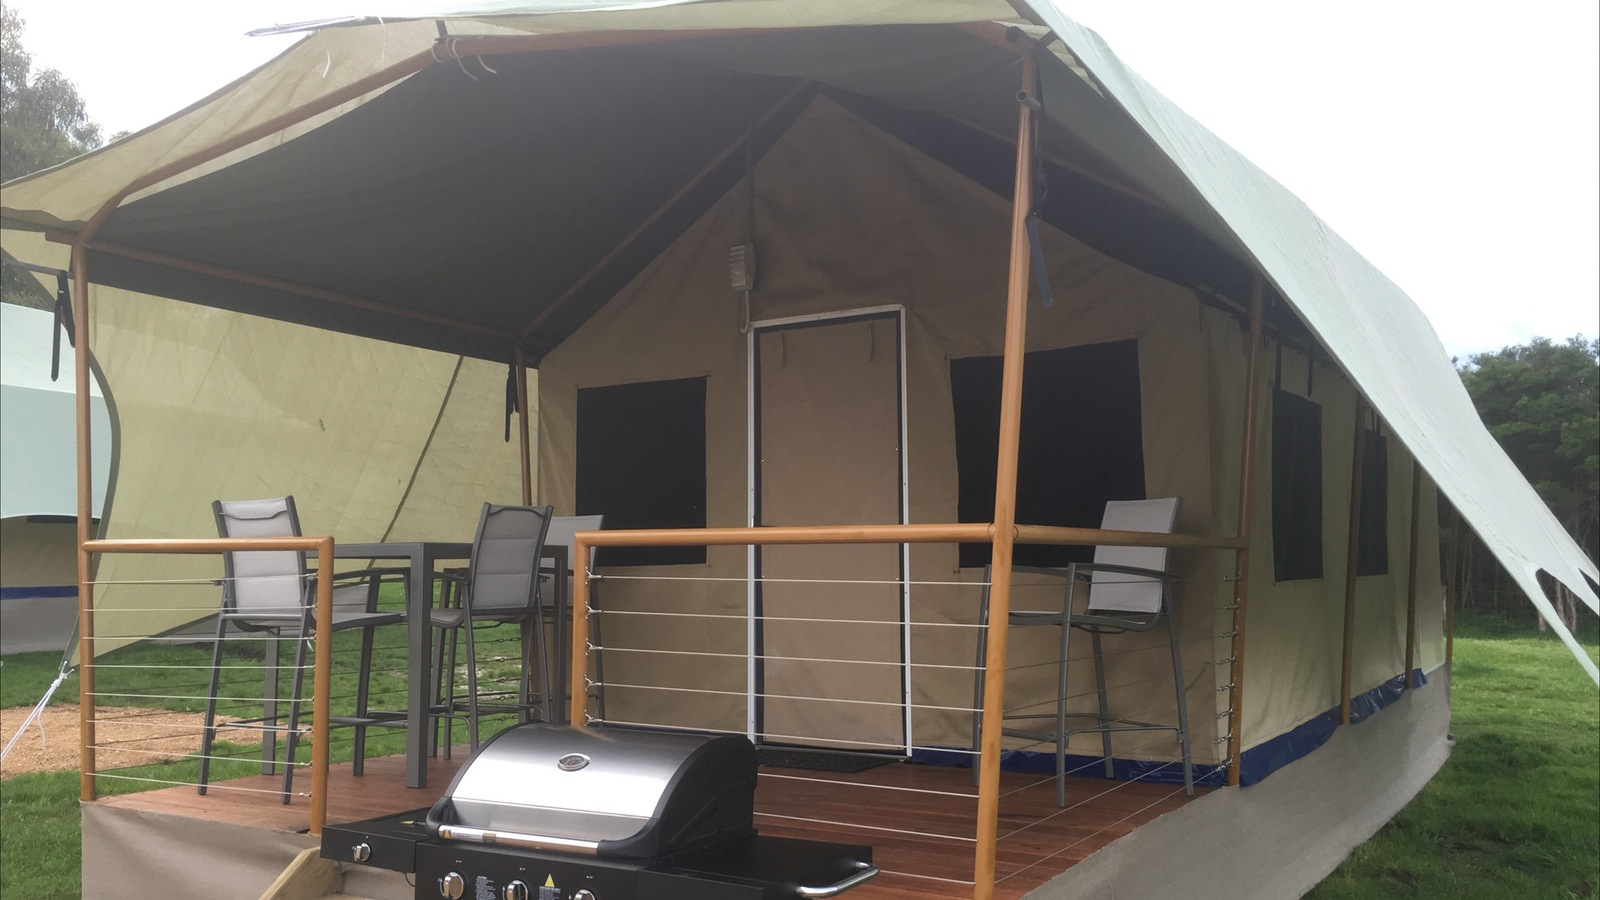 Promhills Cabins Glamping Eco Tent